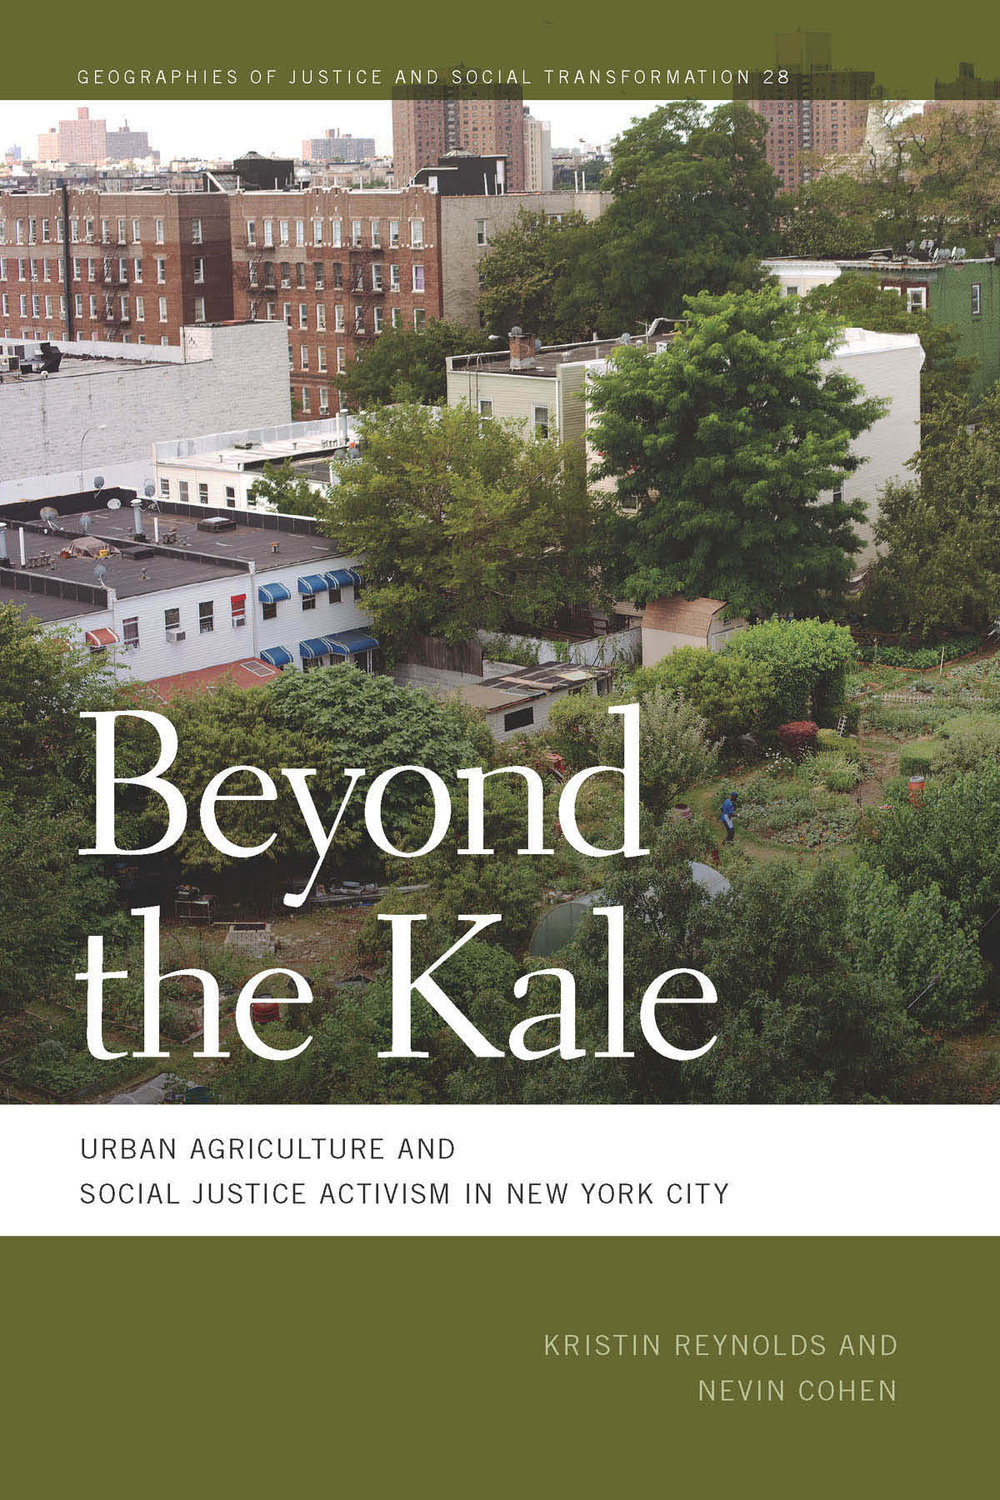 Reynolds and Cohen - BEYOND THE KALE COVER copy.jpg